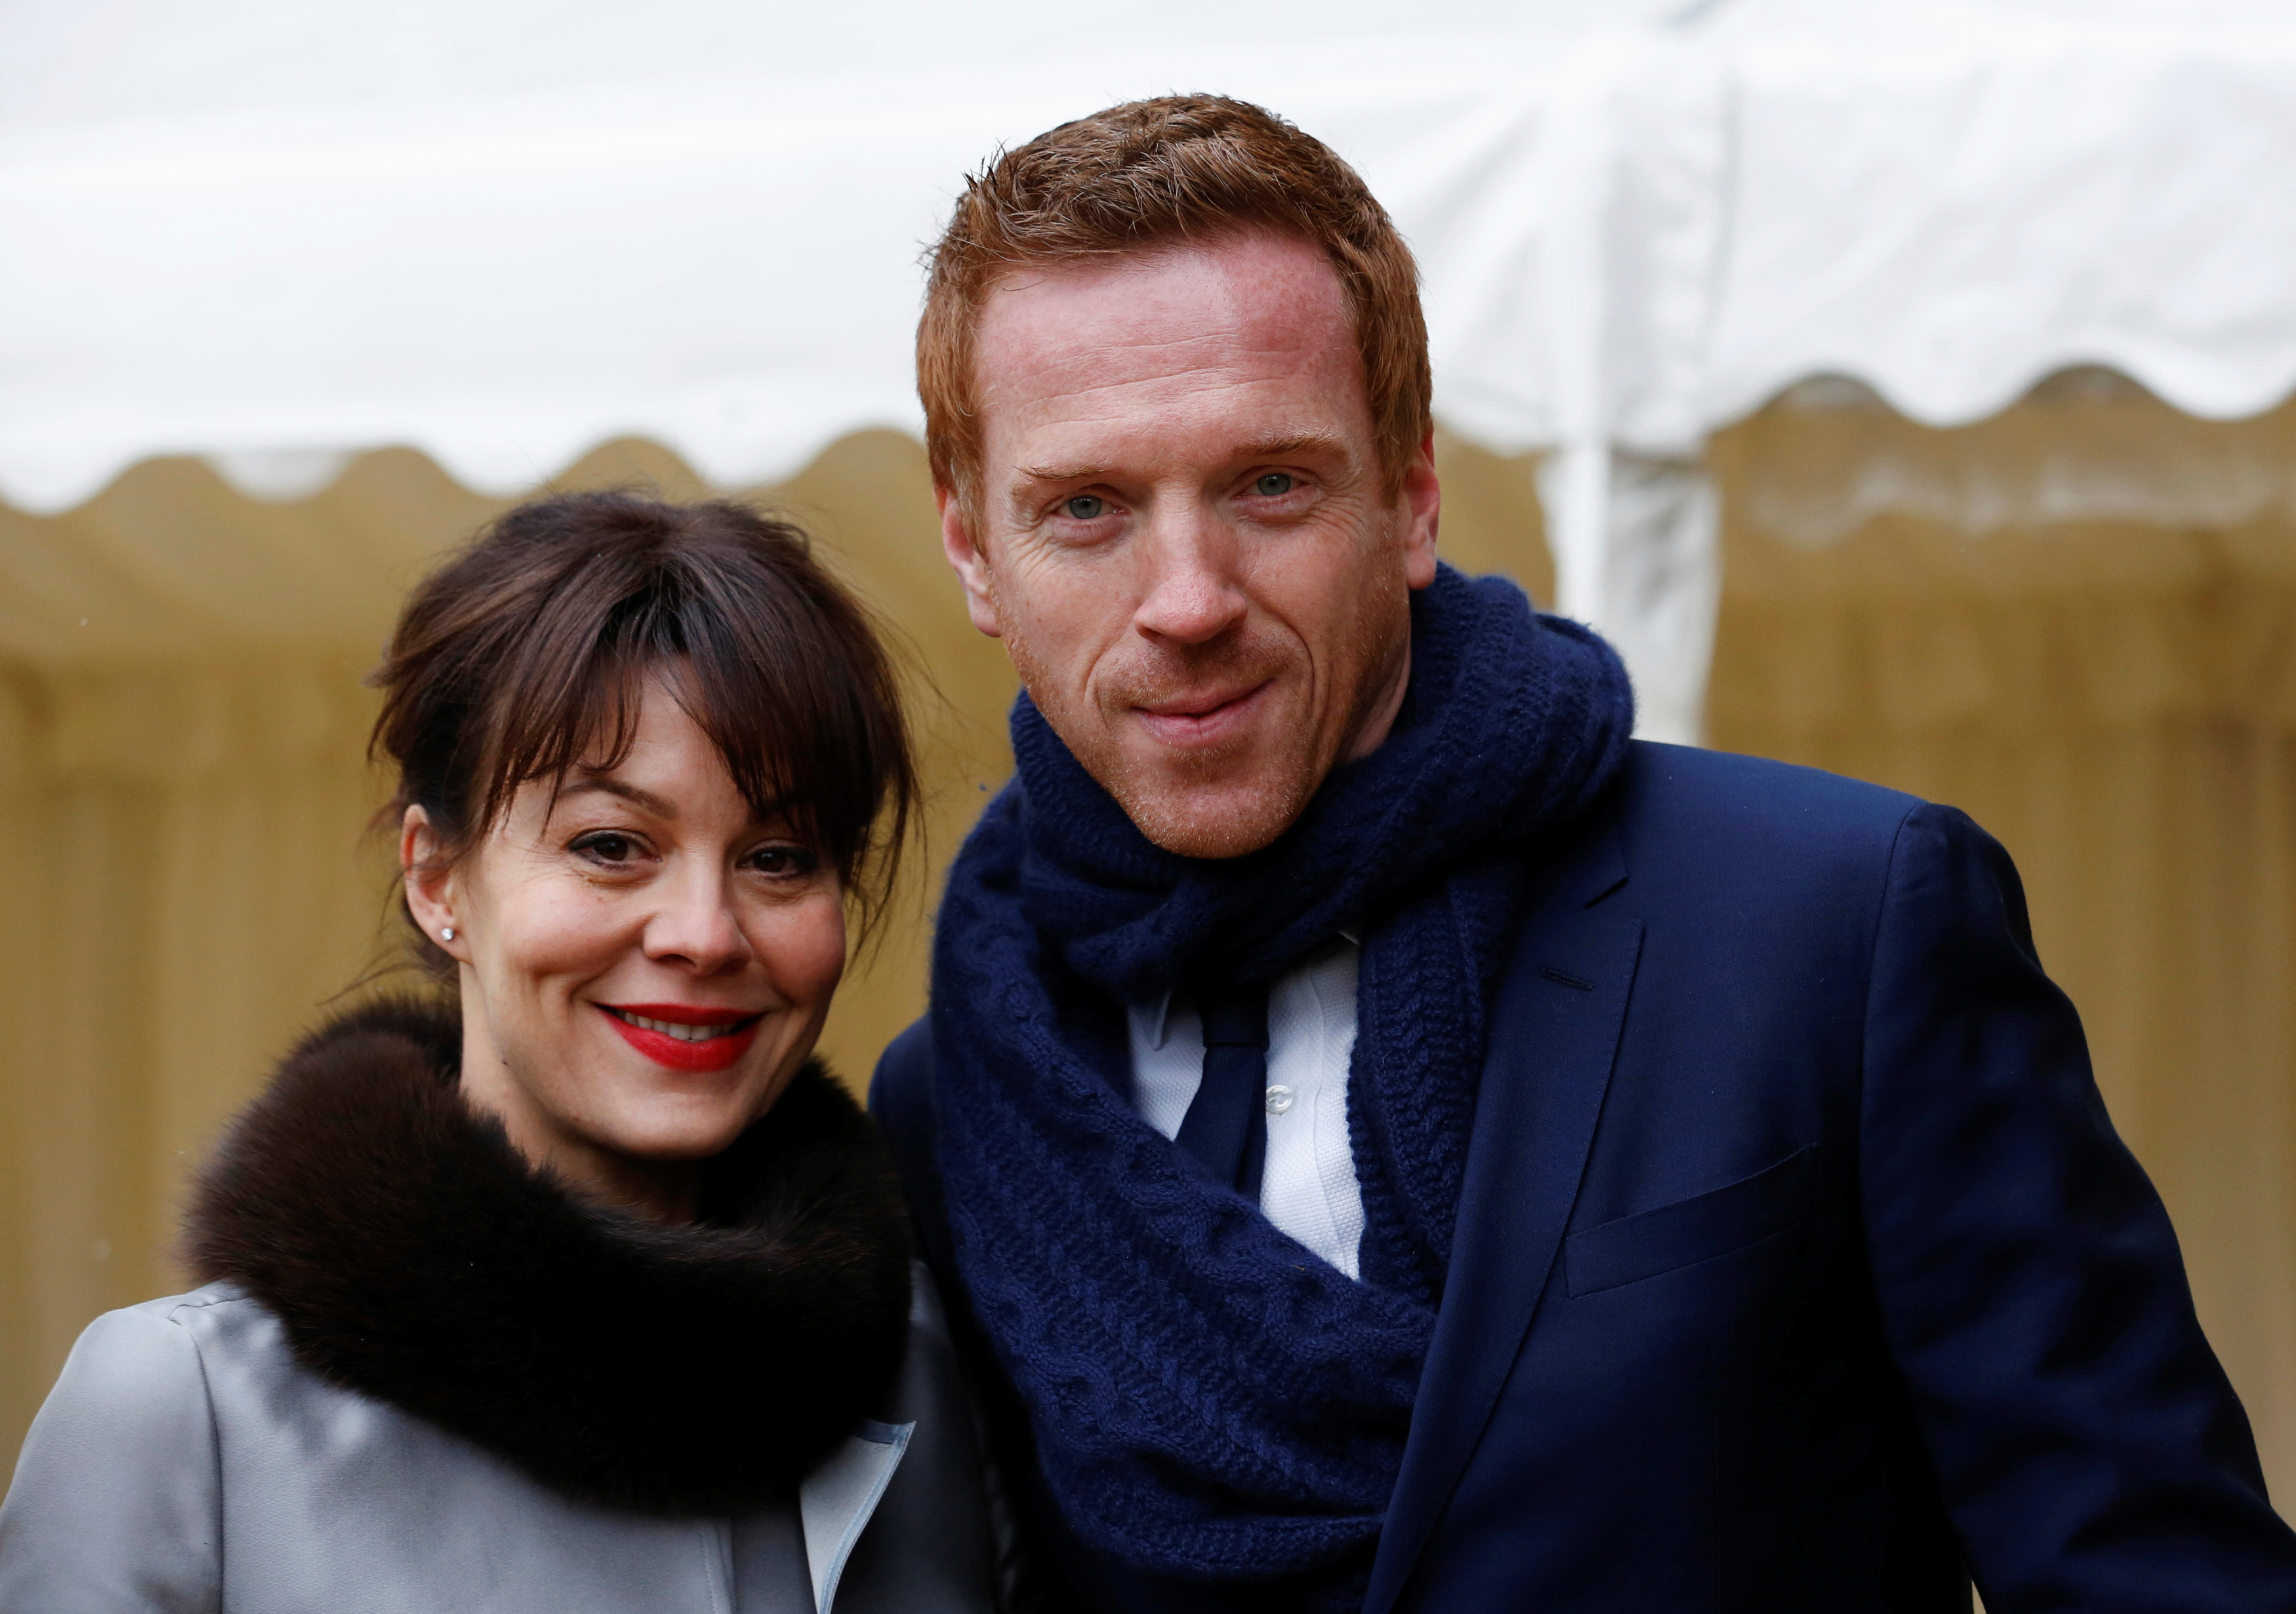 Actors Damian Lewis and Helen McCrory arrives for a reception for the British Film Industry held by Britain's Queen Elizabeth and Prince Philip at Windsor Castle southern England  April 4, 2013.  REUTERS/Luke MacGregor